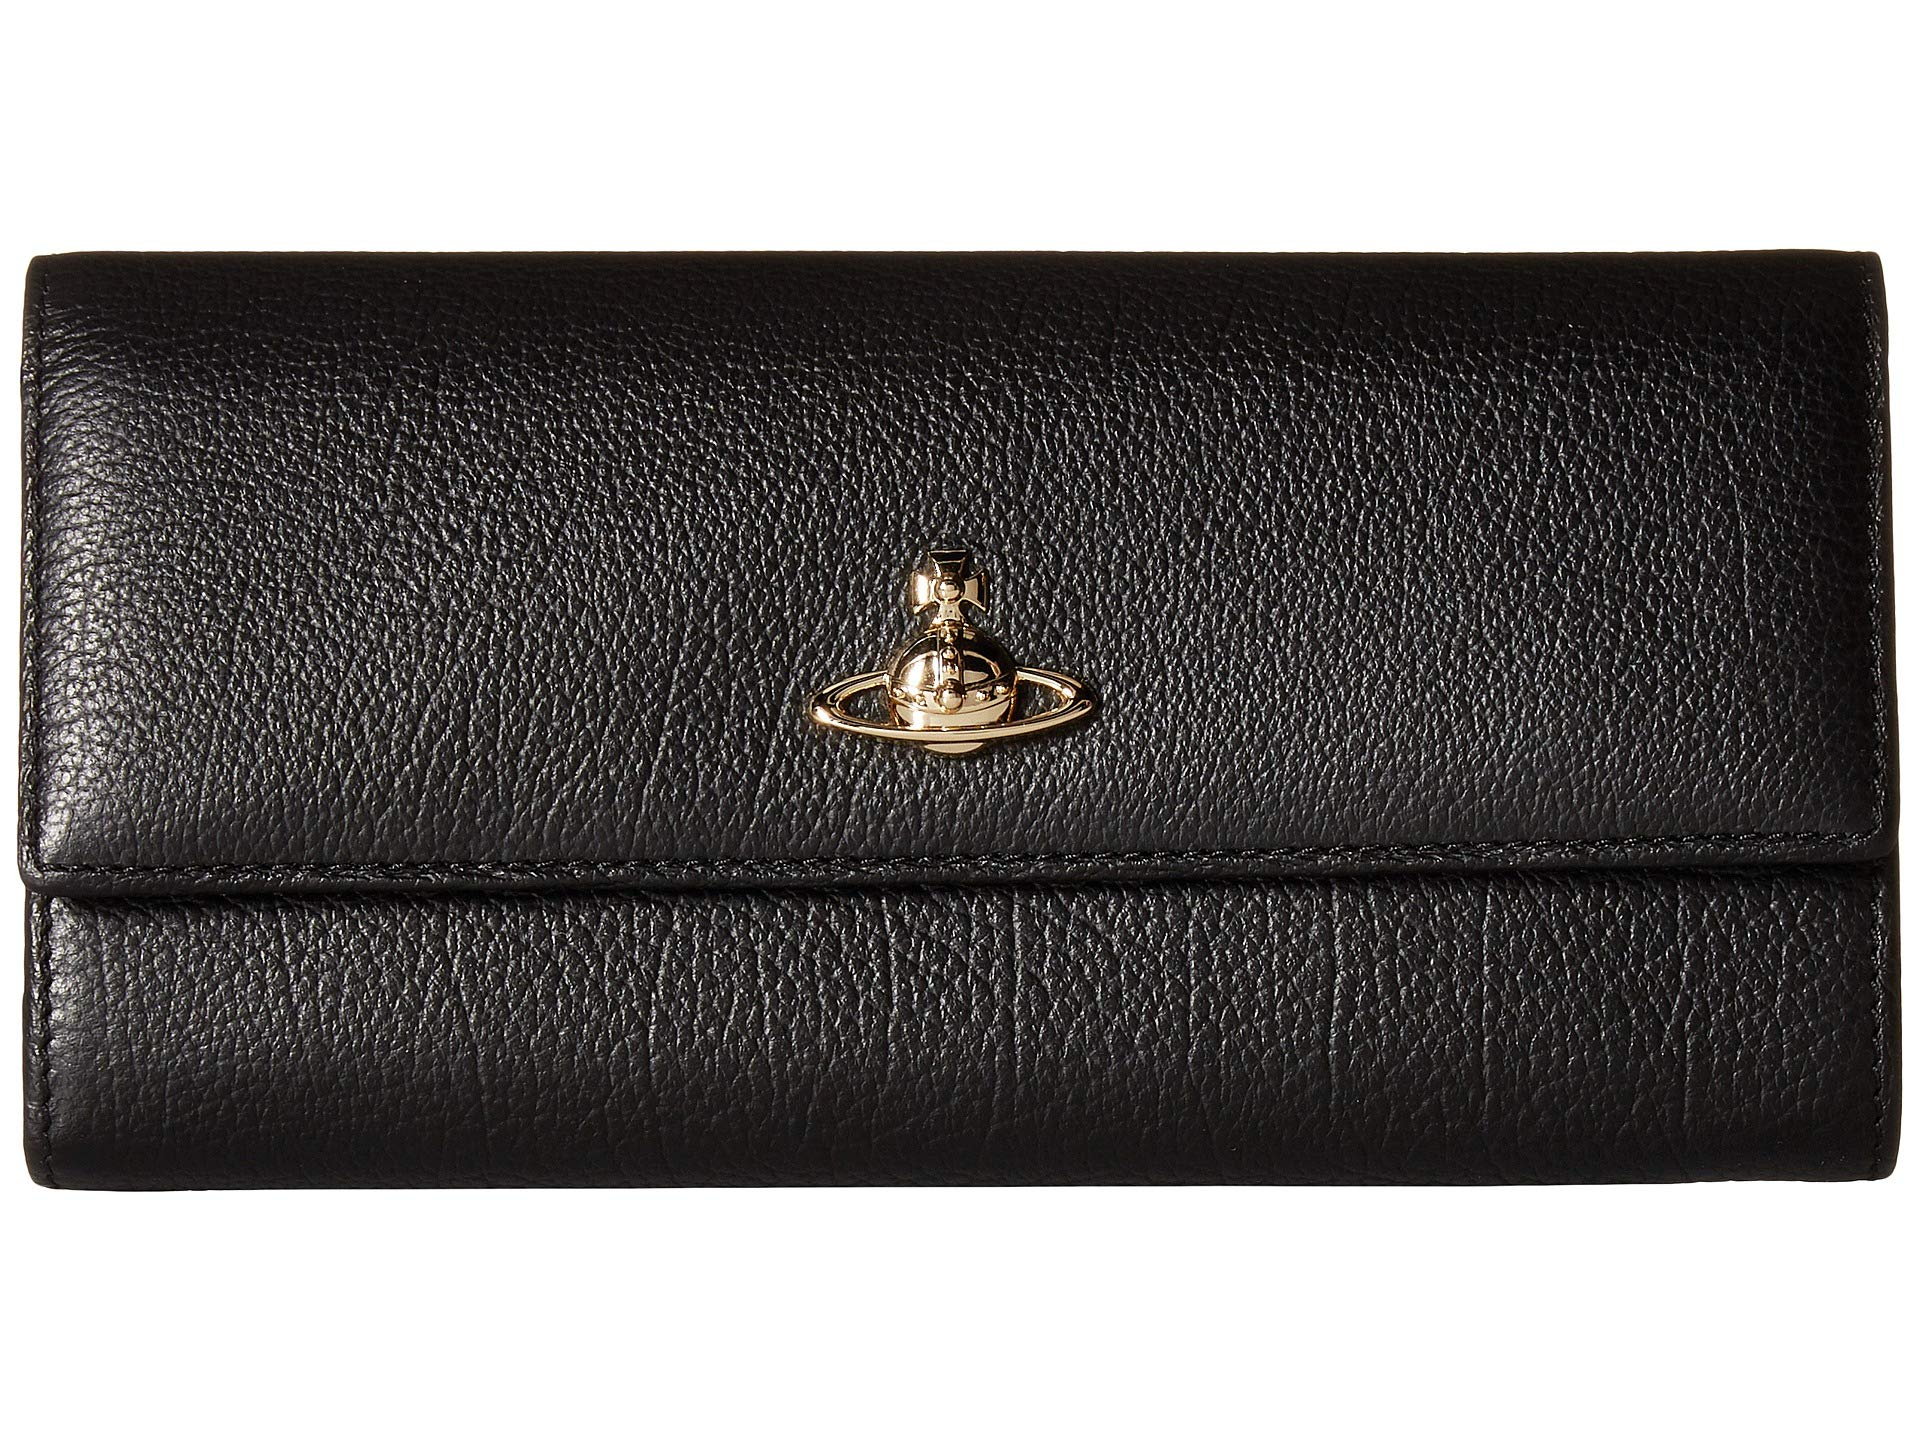 2c22590e573 Vivienne Westwood Balmoral Long Wallet at Luxury.Zappos.com